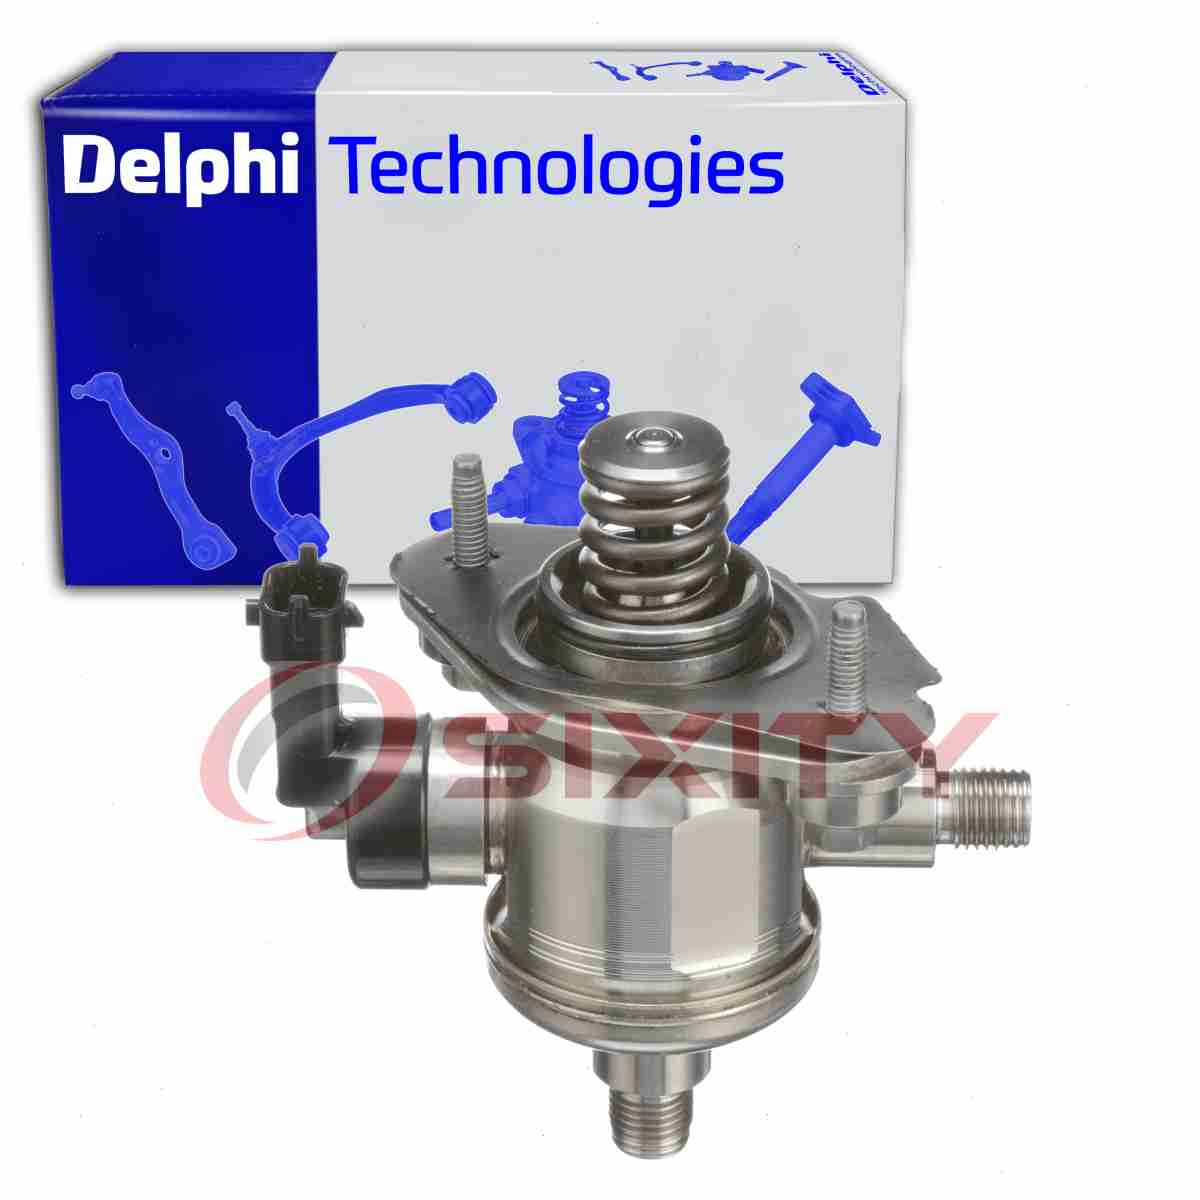 Details about Delphi Injection Fuel Pump for 2010-2017 GMC Terrain - High  Pressure Direct tl